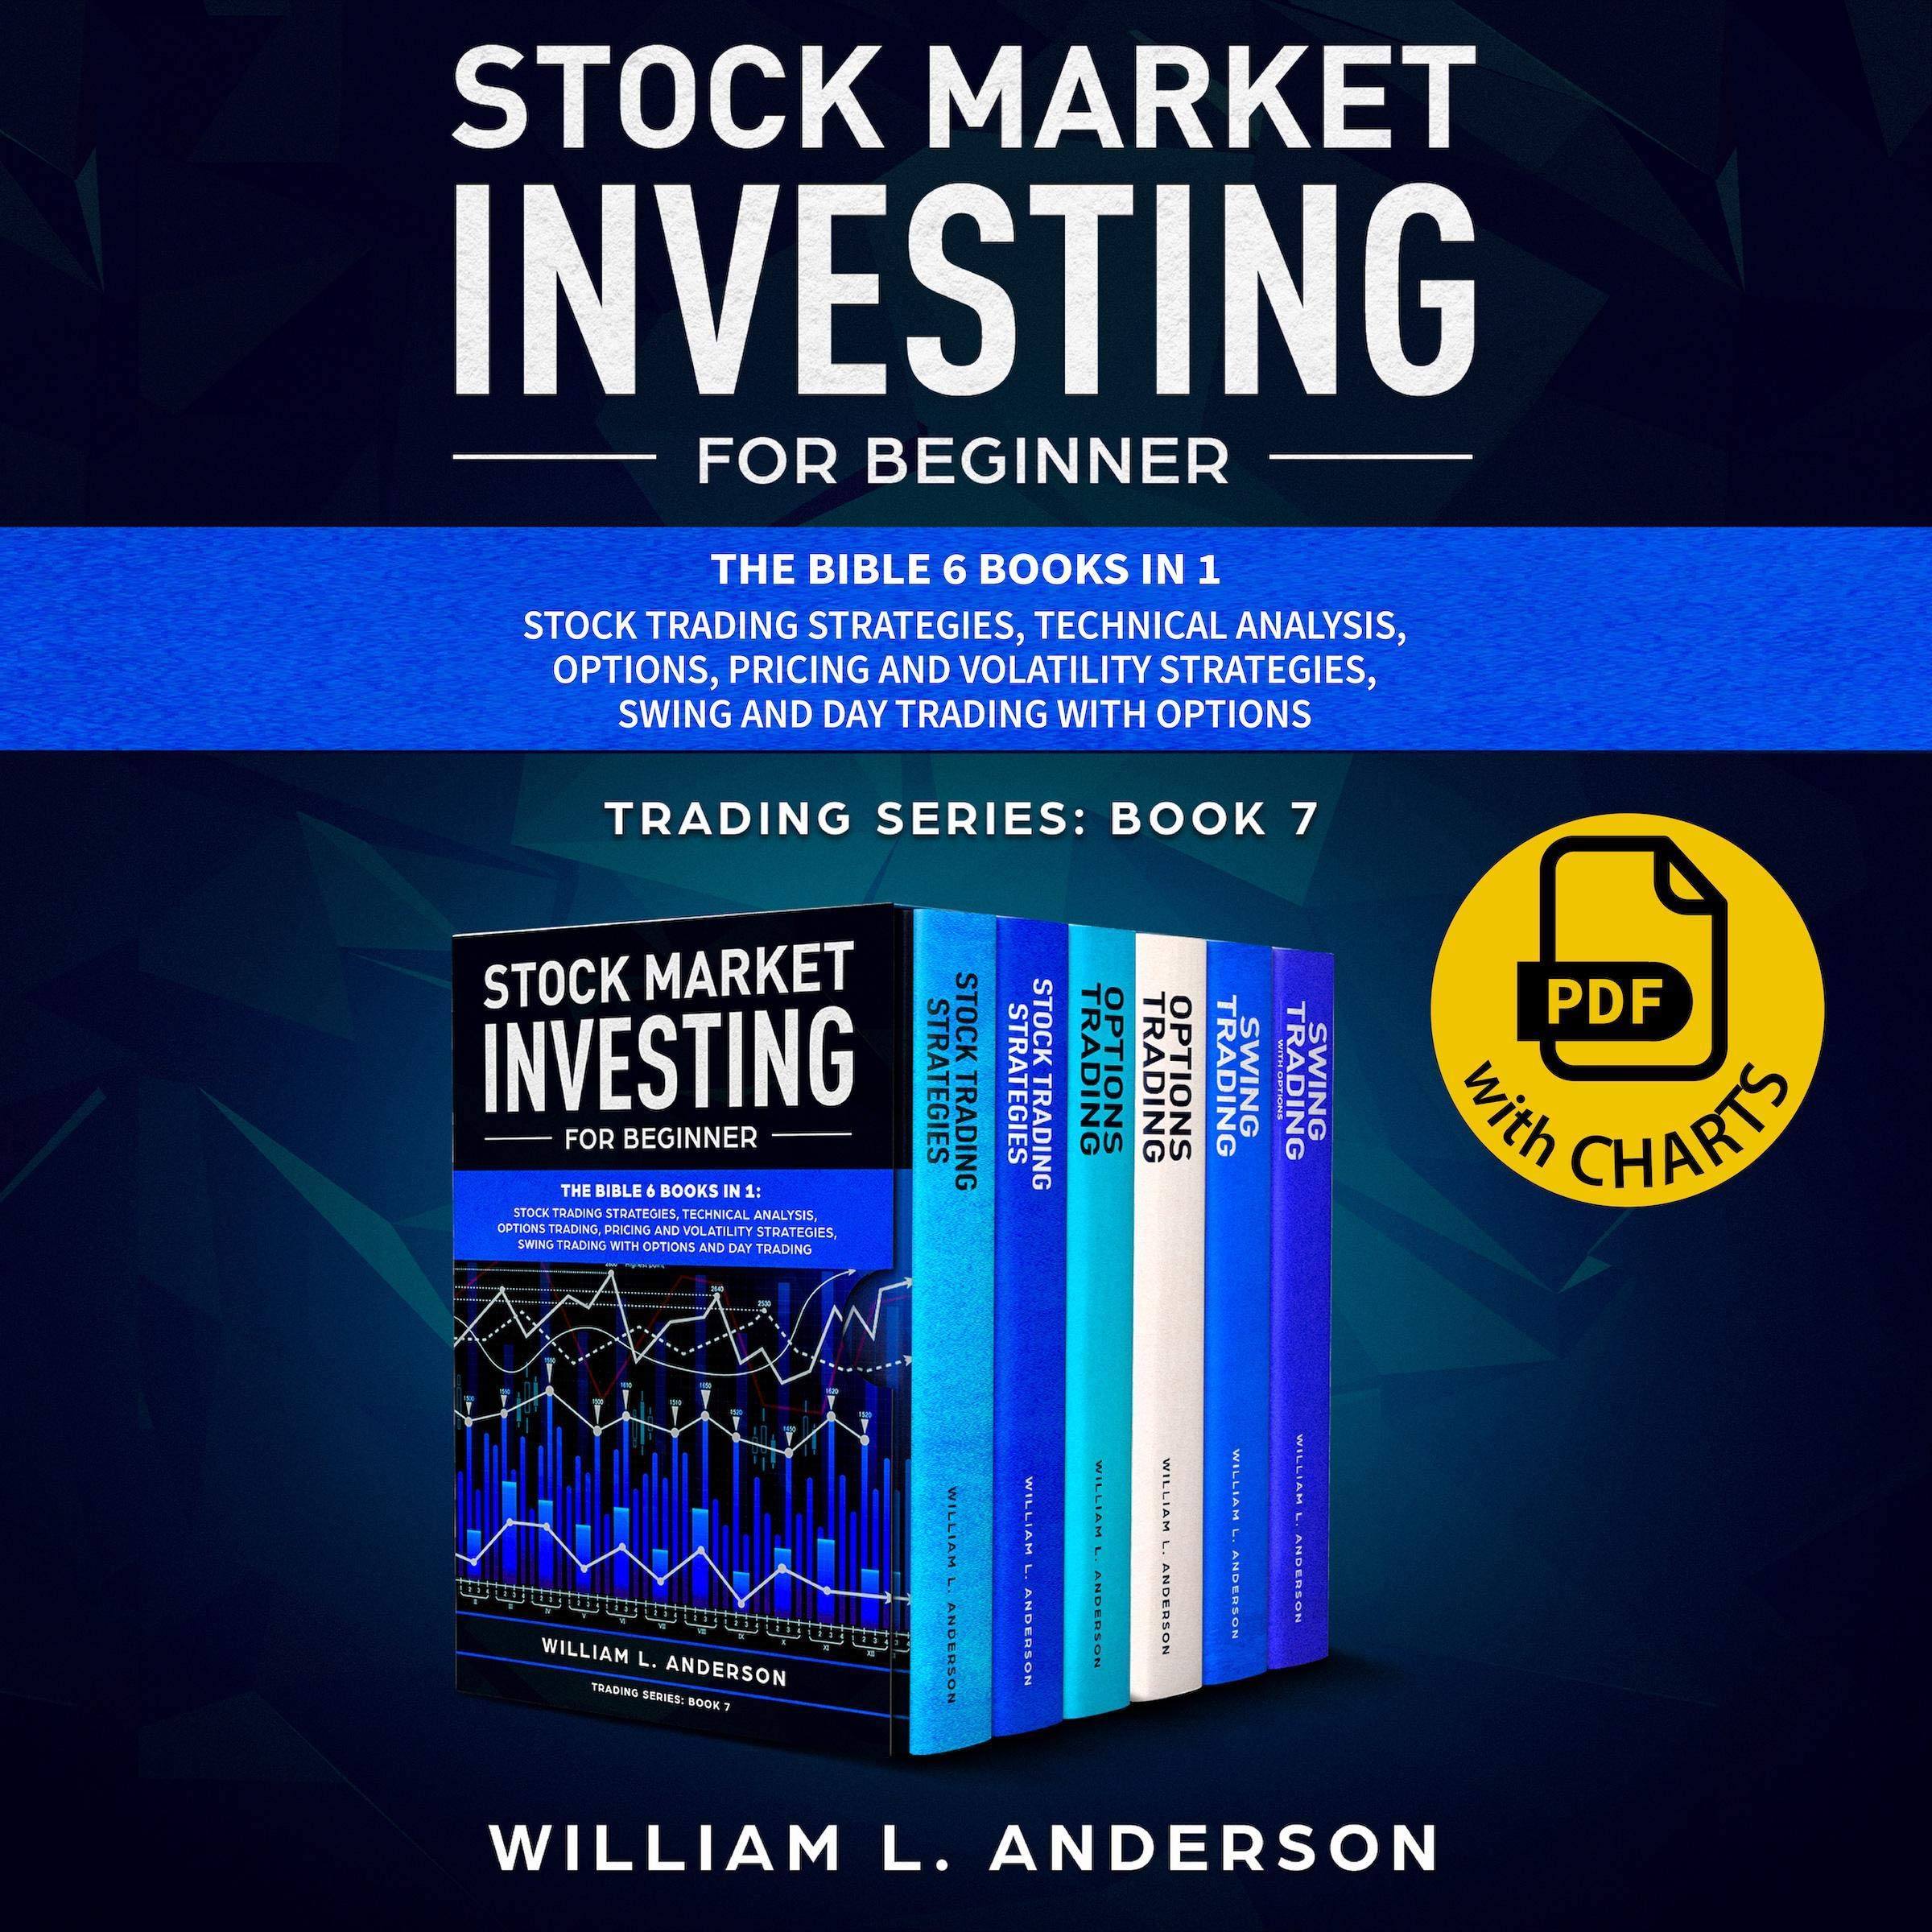 Stock Market Investing for Beginner: The Bible 6 Books in 1: Stock Trading Strategies, Technical Analysis, Options, Pricing and Volatility Strategies, Swing and Day Trading with Options